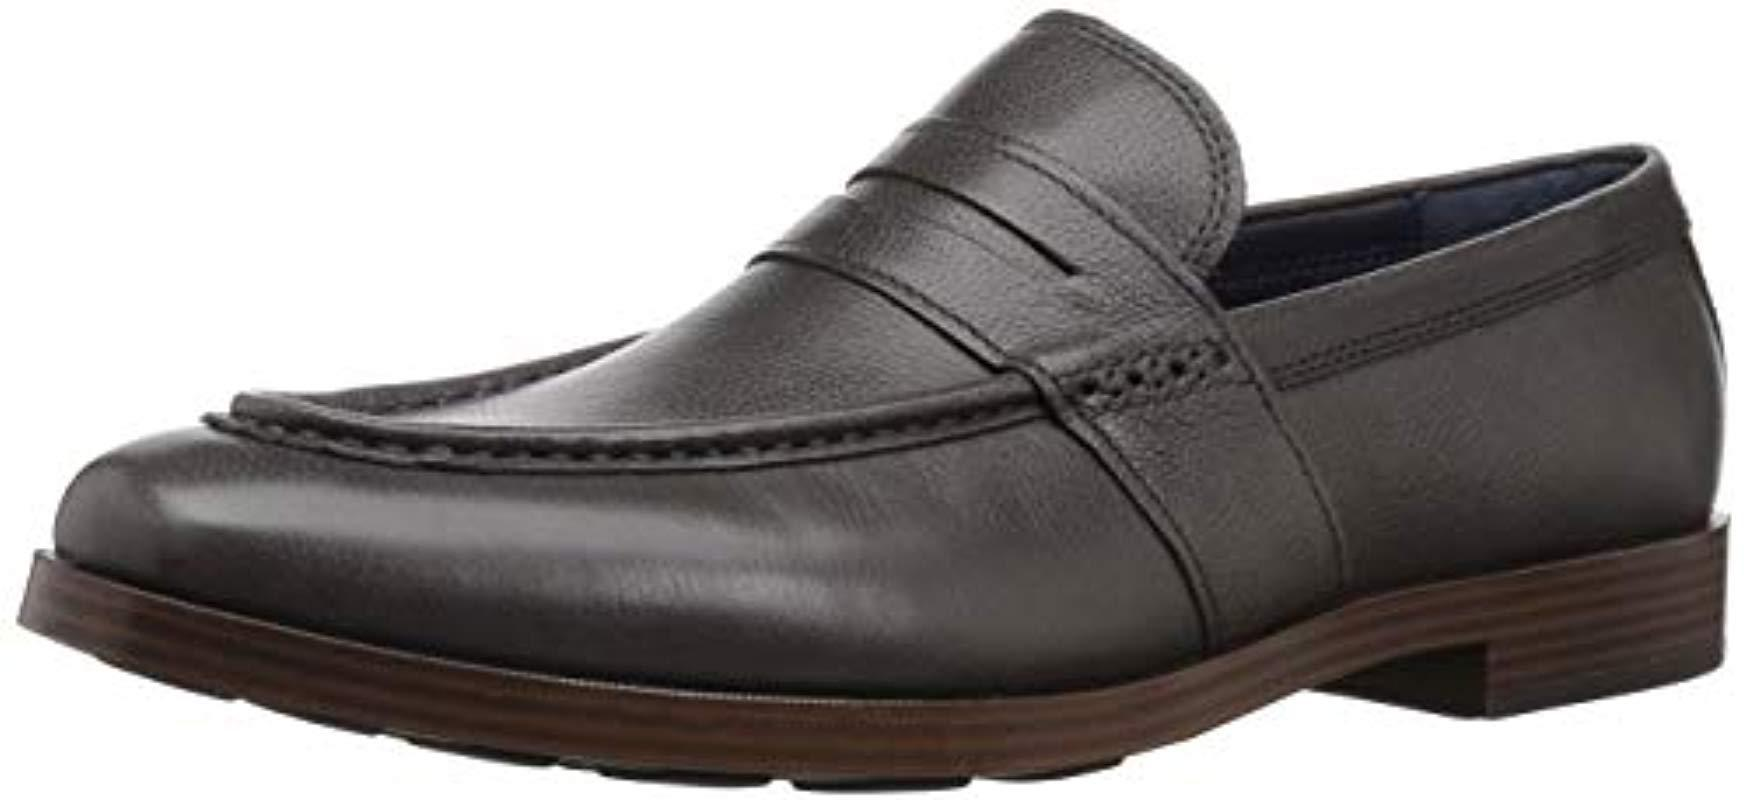 4ad2763d163 Lyst - Cole Haan Jefferson Grand Penny Loafer in Black for Men